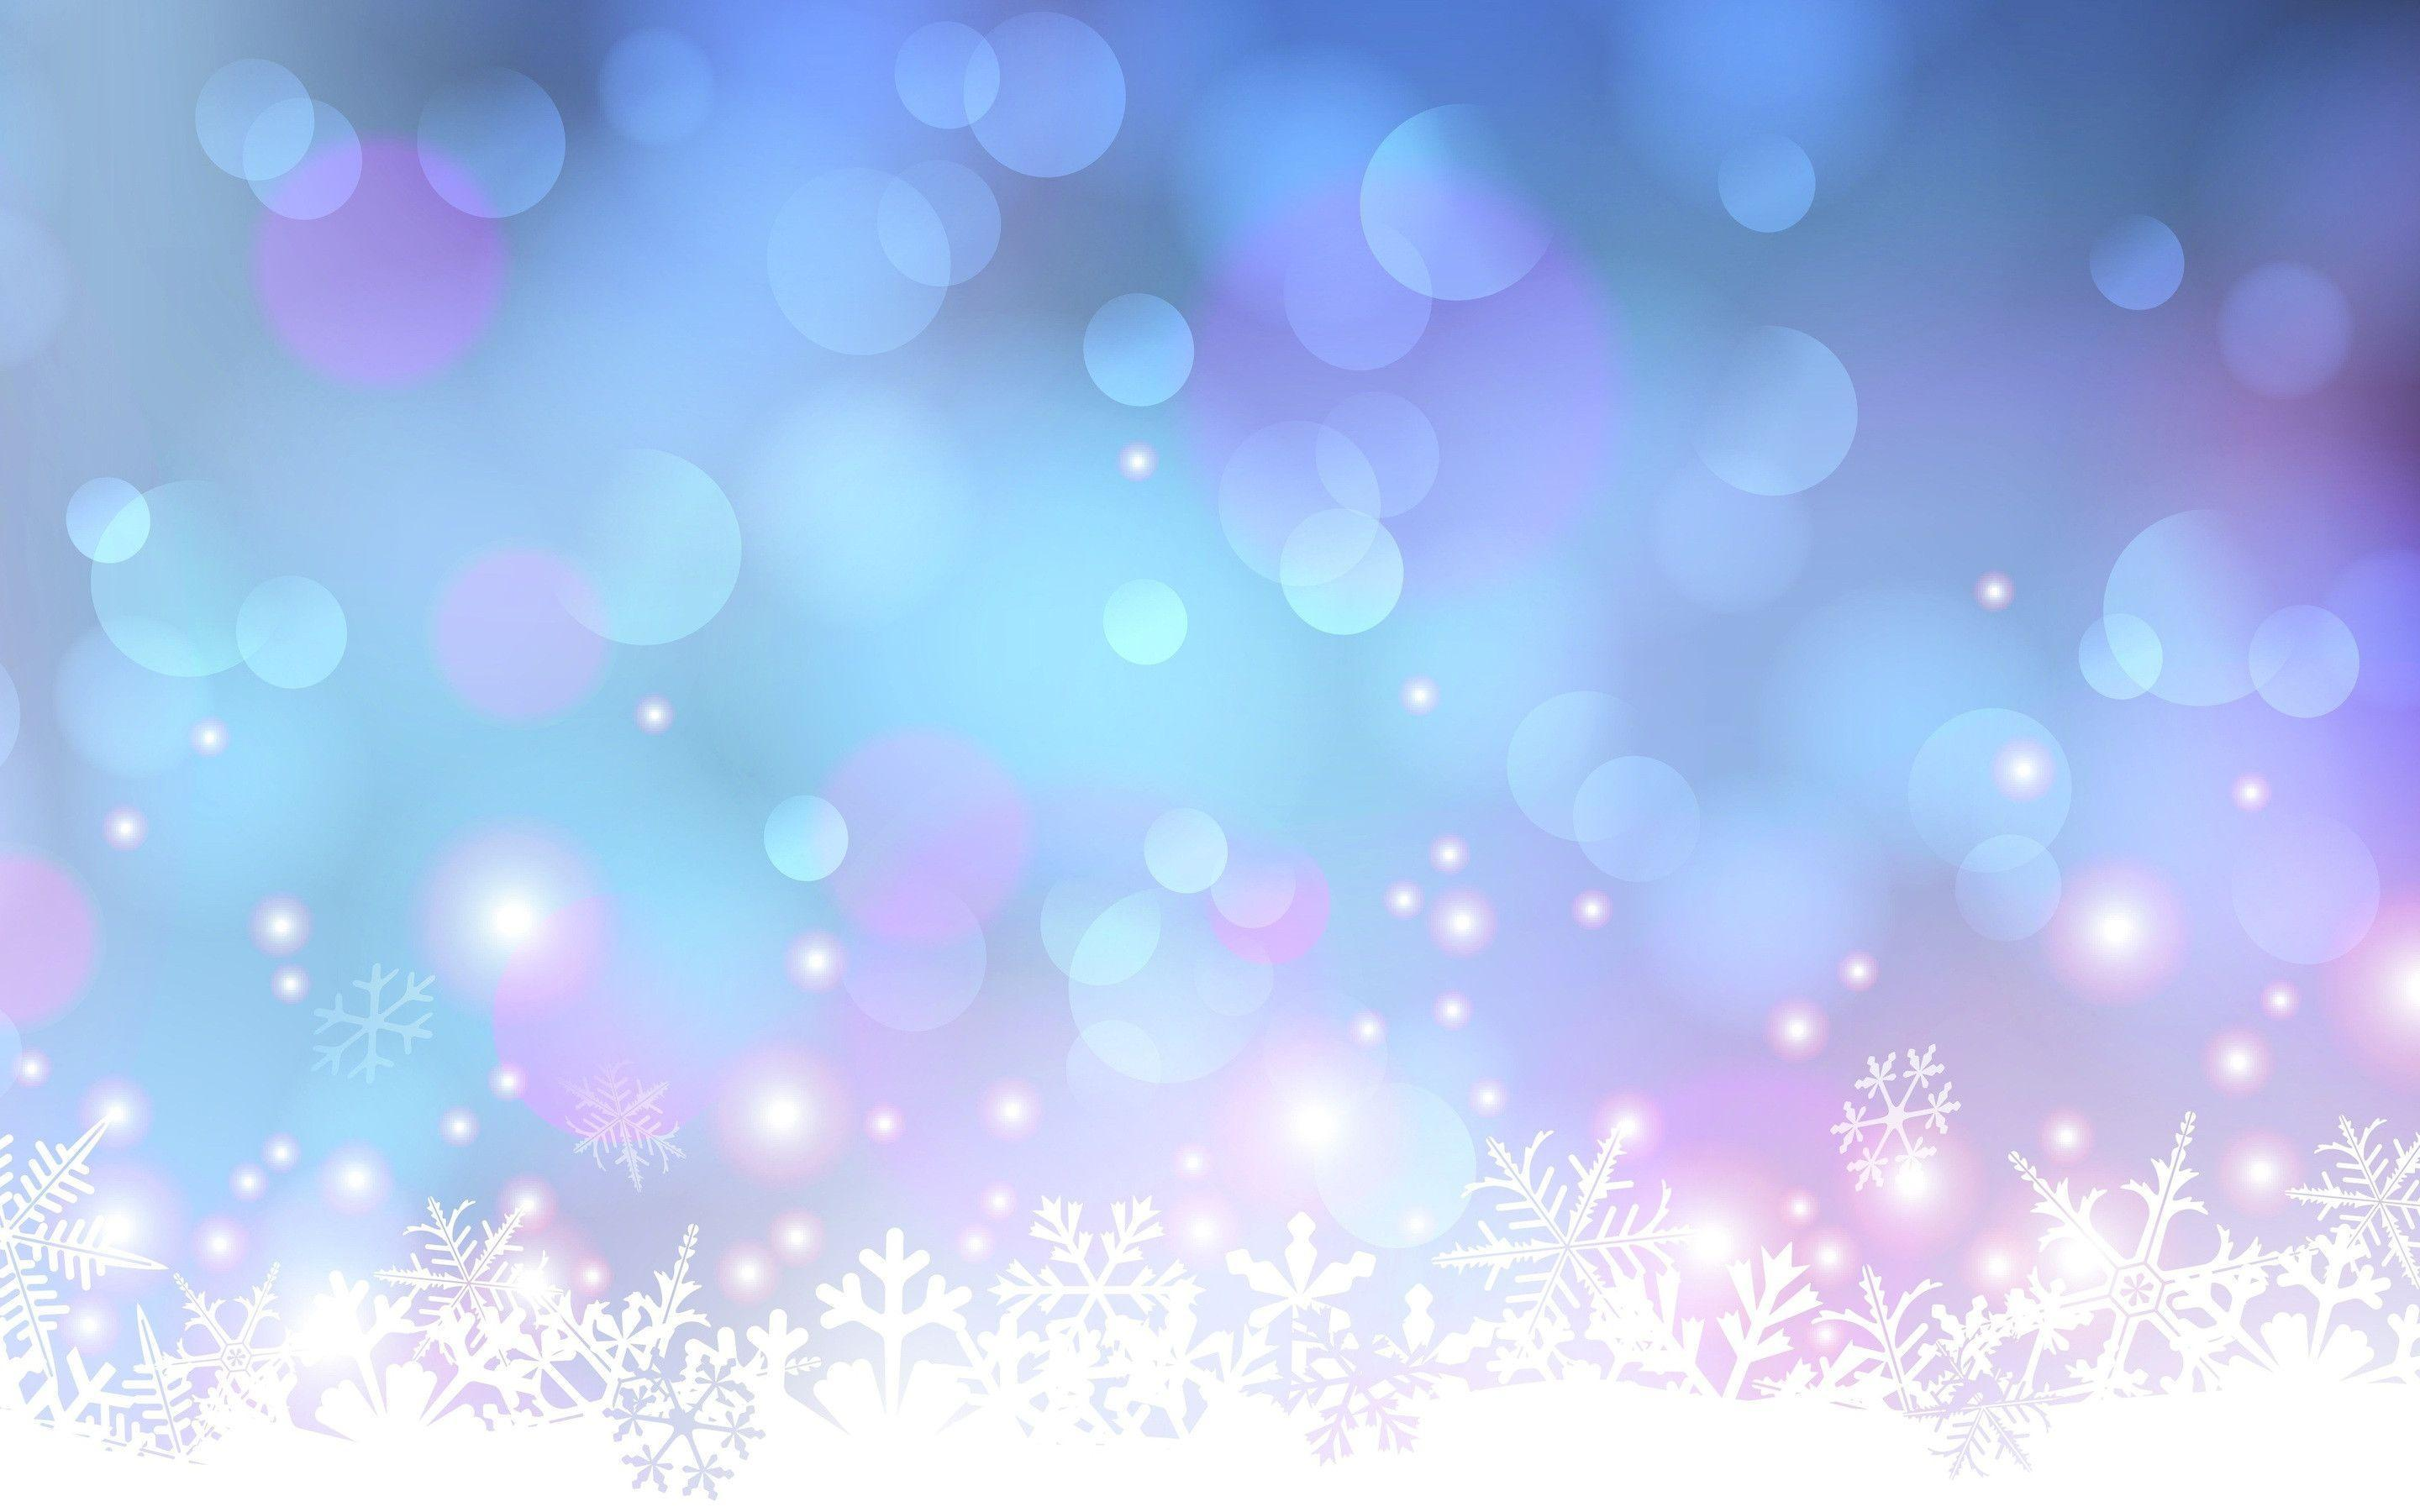 Free Holiday Wallpaper Backgrounds - Wallpaper Cave